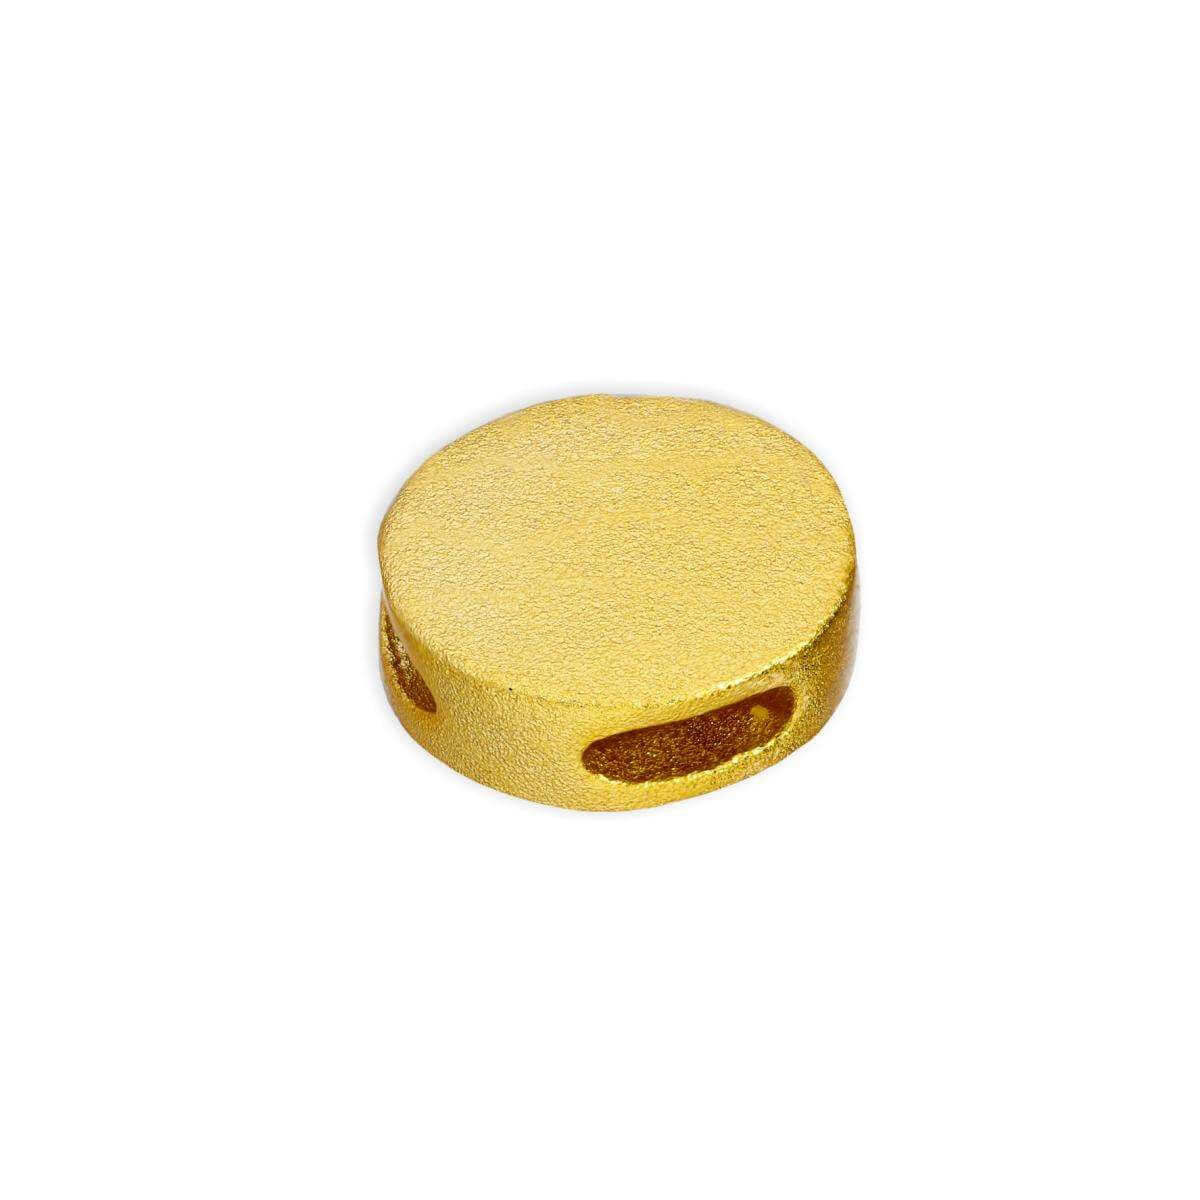 Gold Plated Sterling Silver 9mm Frosted Flat Round Disc Bead